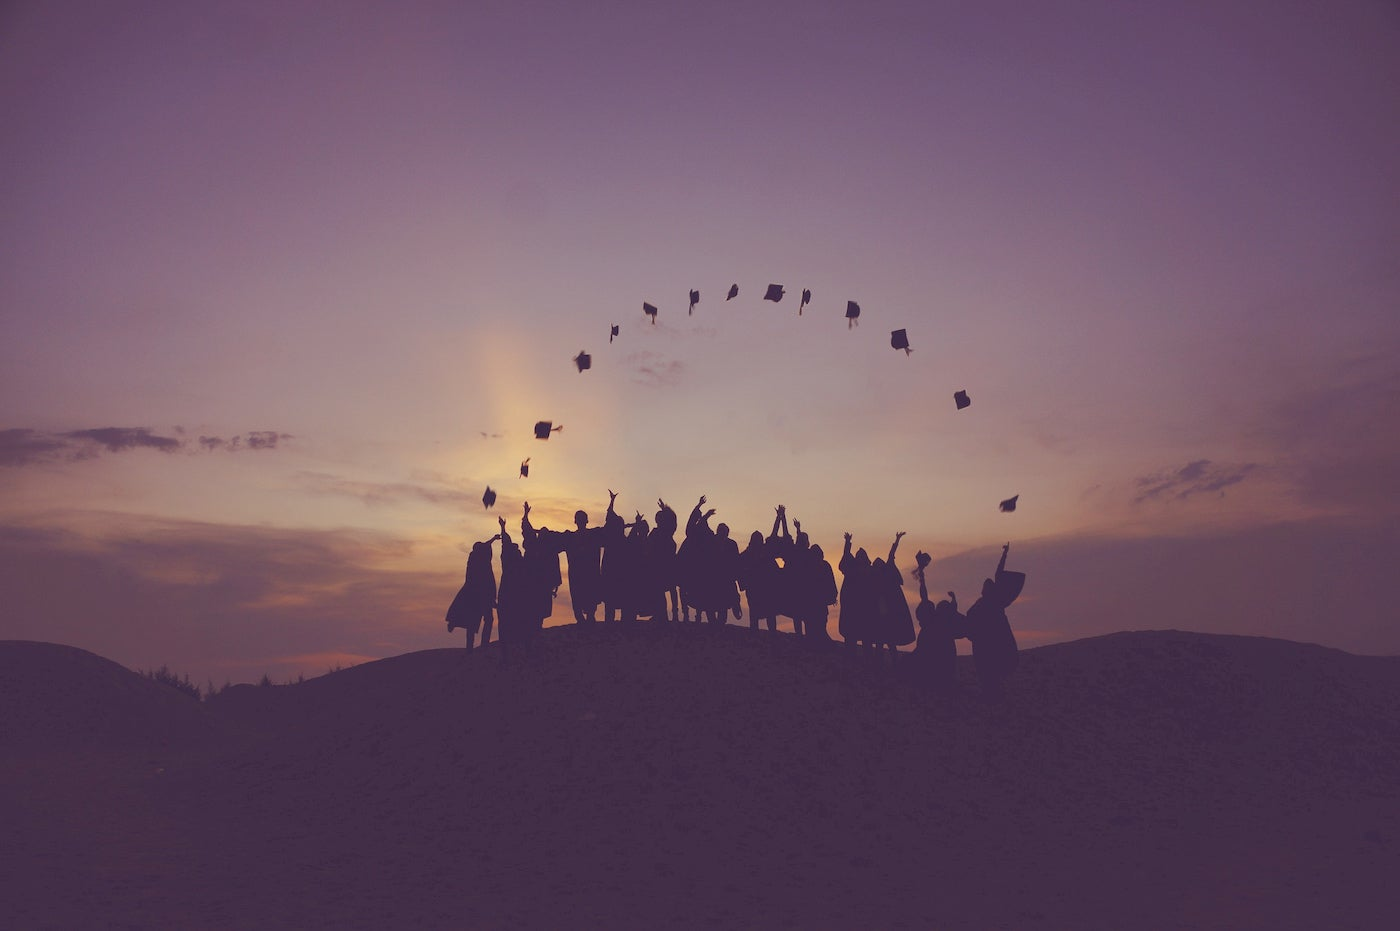 Silhouttes of graduates throwing their caps on a mountain.